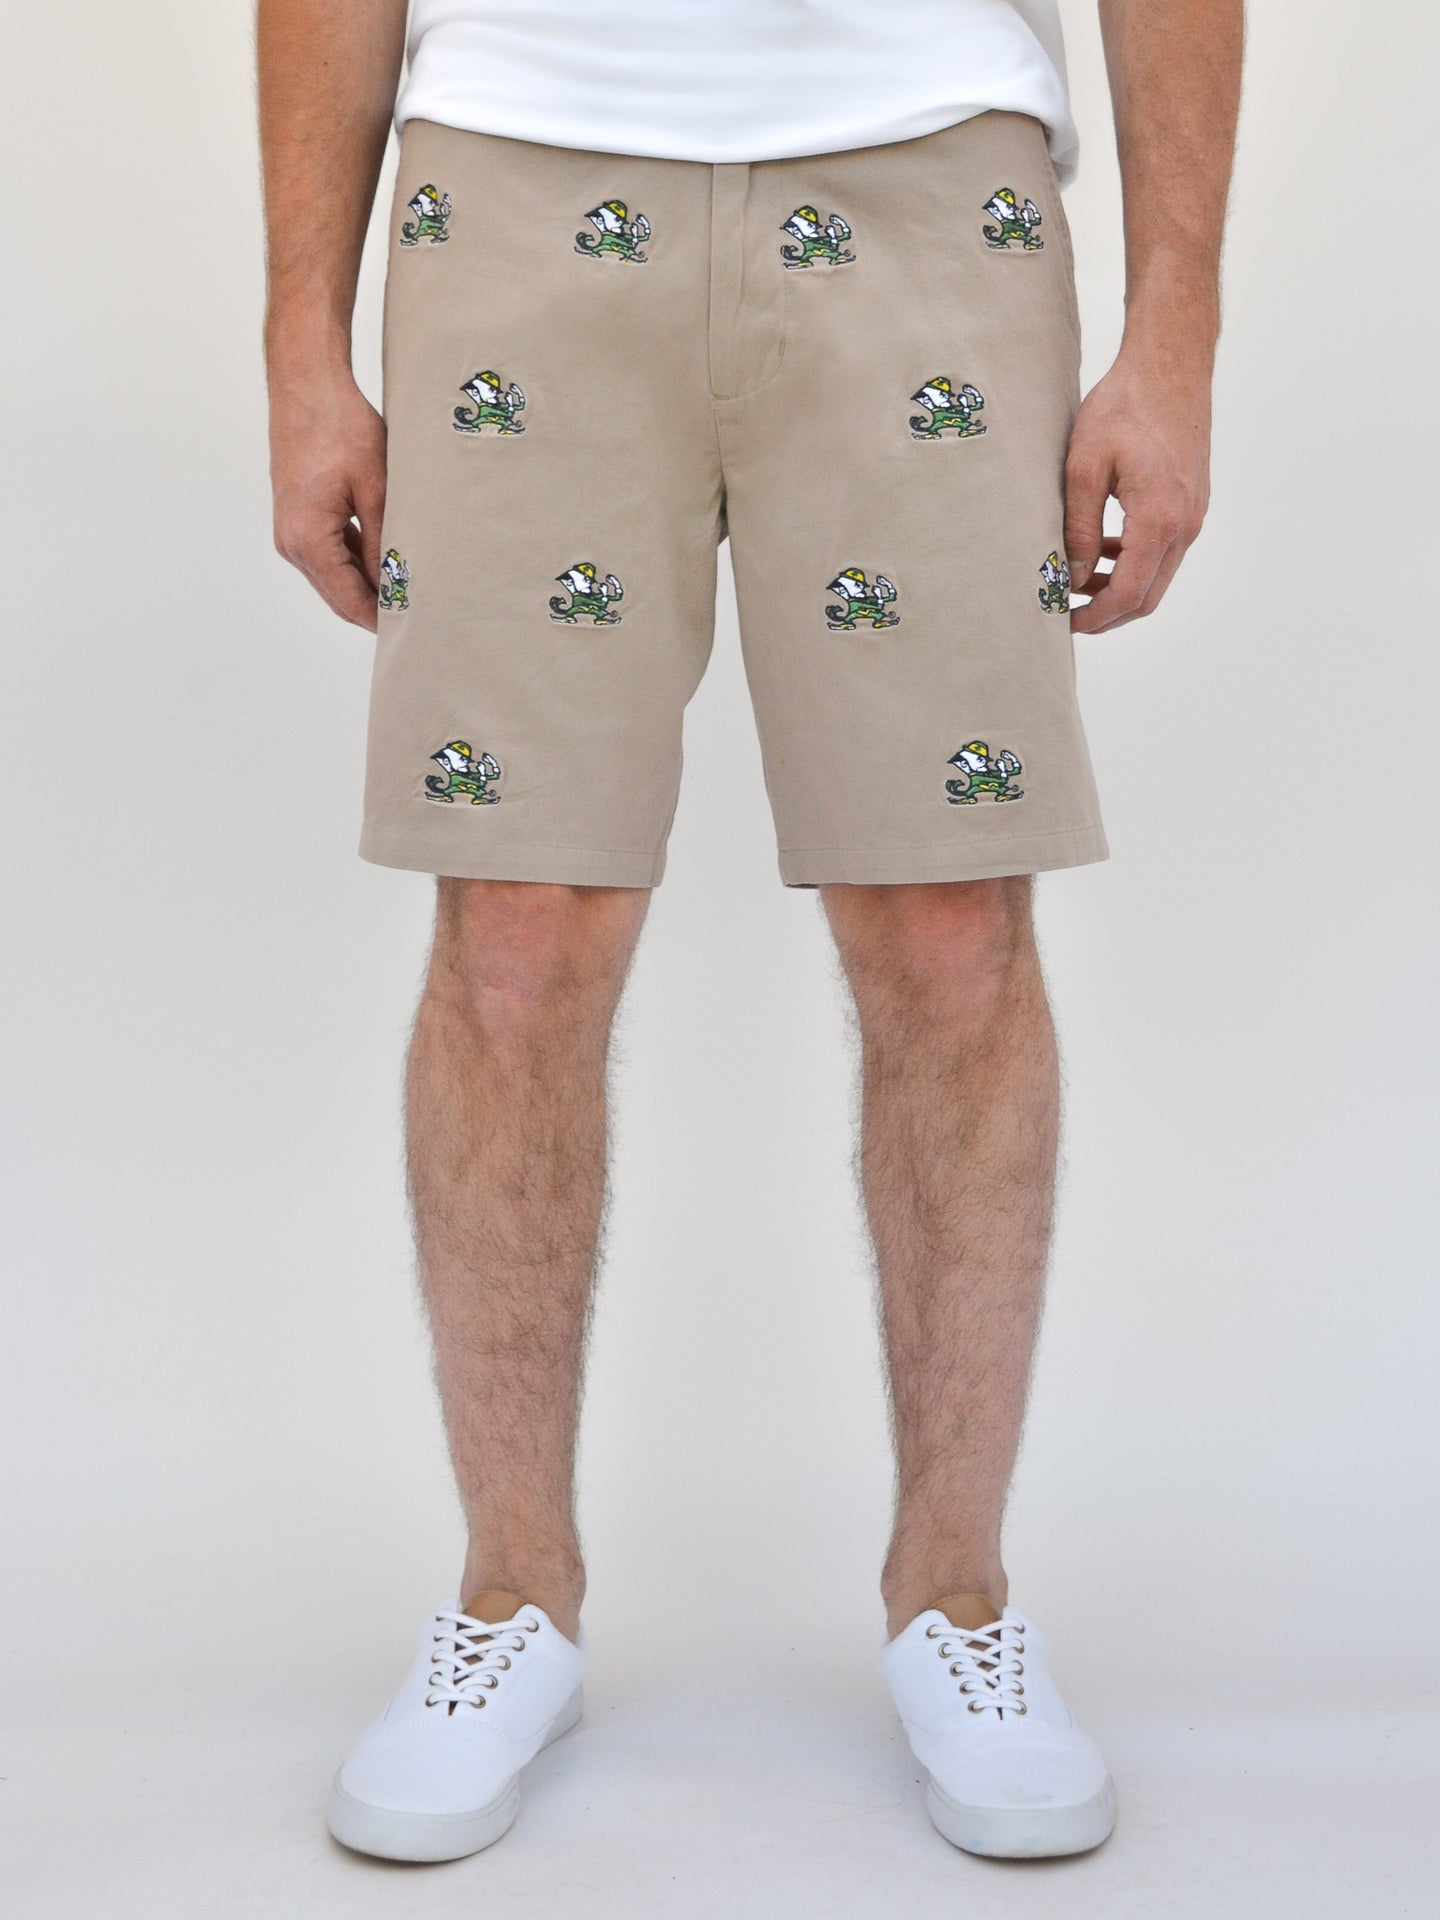 Notre Dame Khaki Fighting Irish Shorts